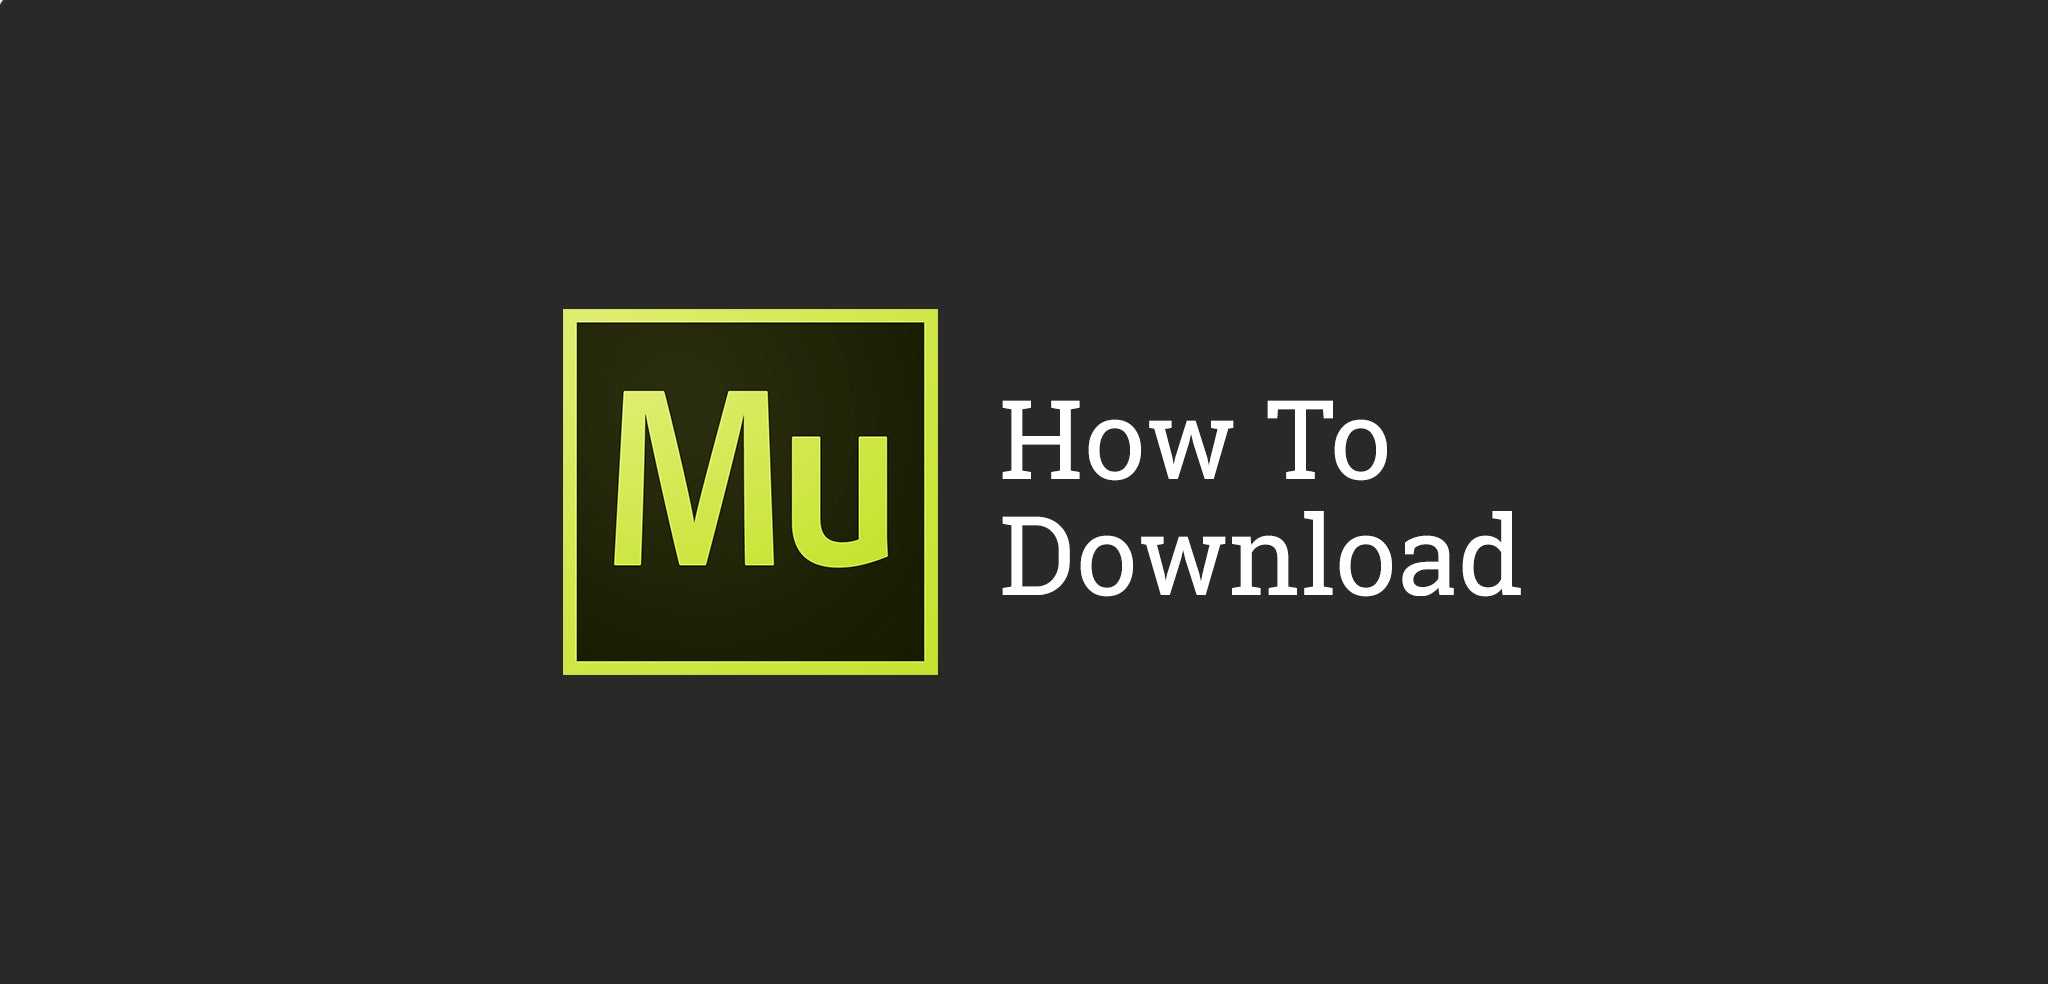 How to download Adobe Mue